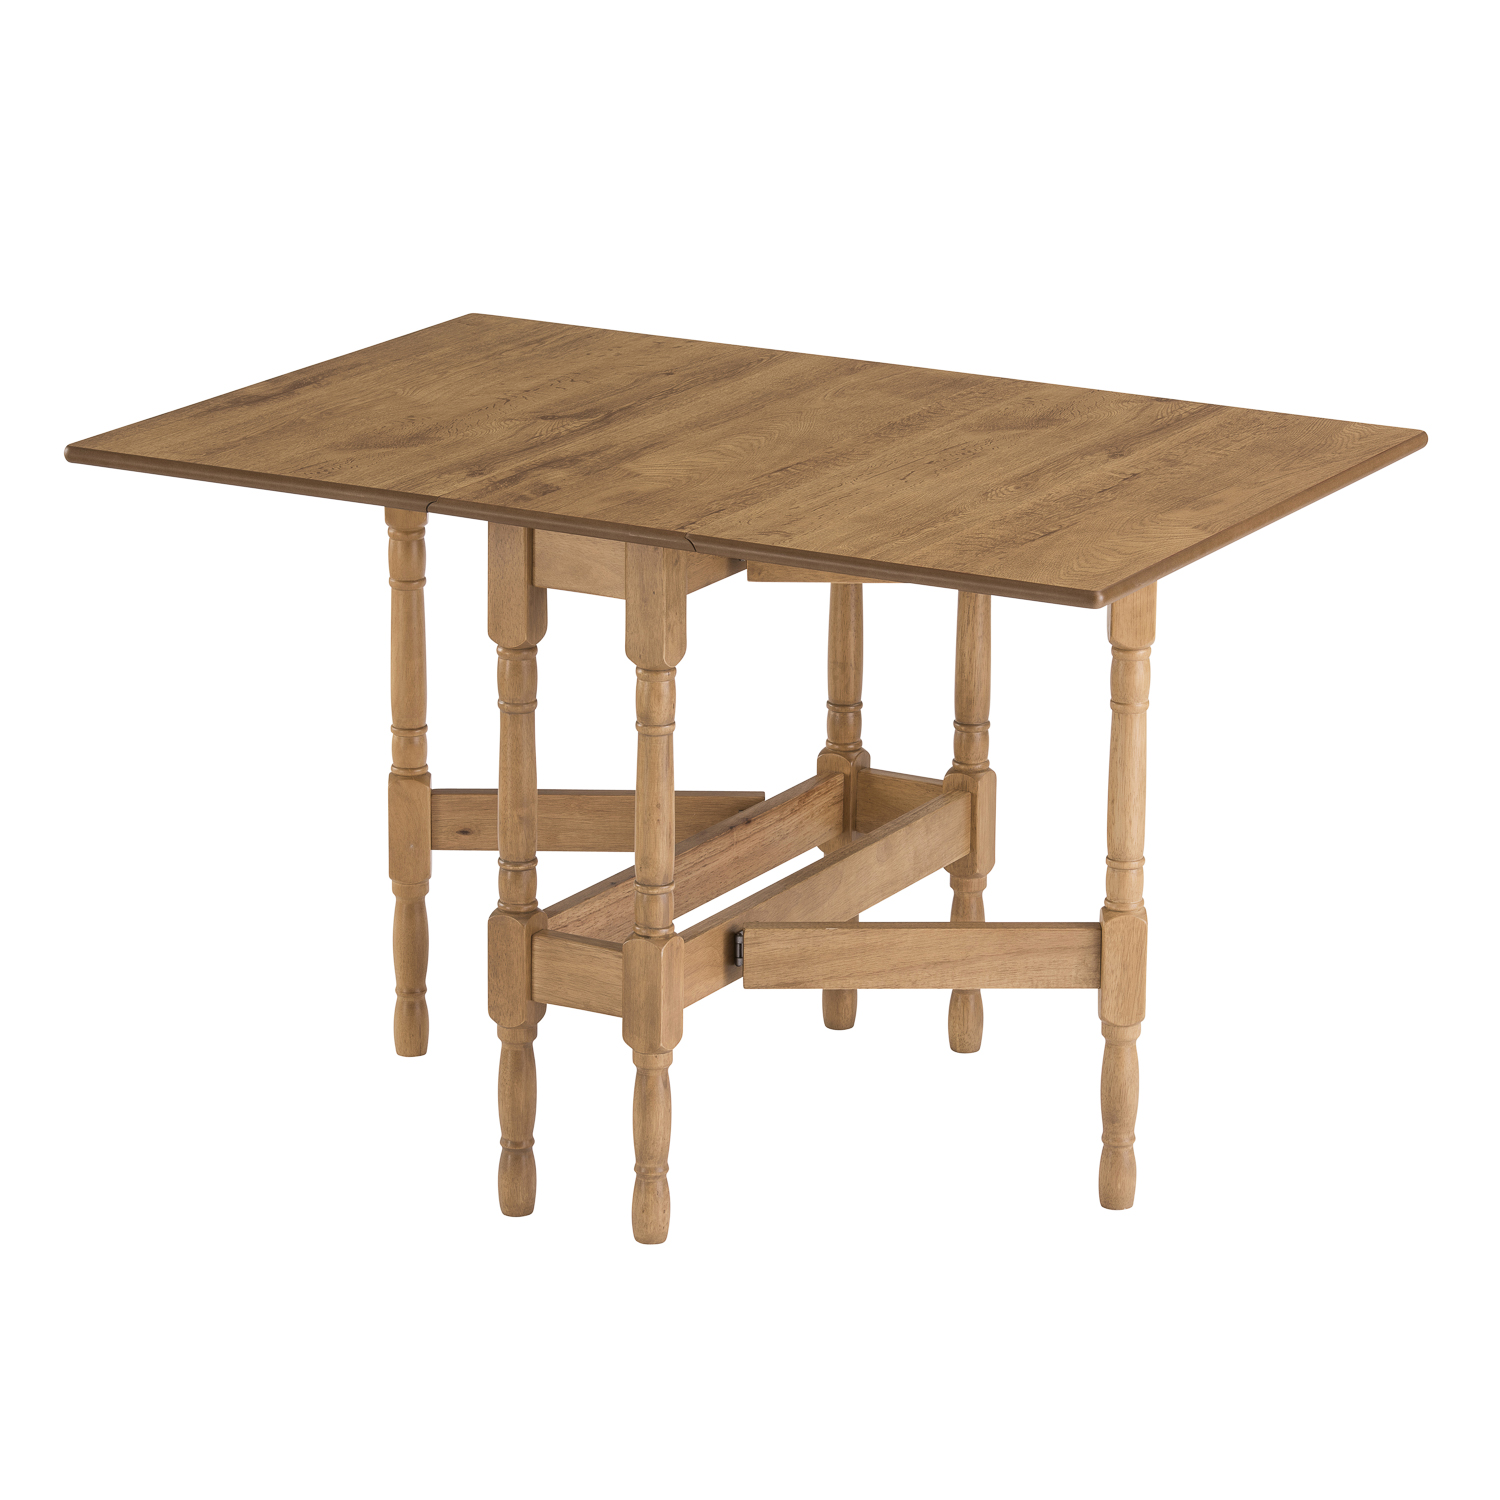 Drop Leaf Table HEATPROOF Folding Dining Kitchen Gateleg  : Web 1894 from www.ebay.co.uk size 1500 x 1500 jpeg 494kB